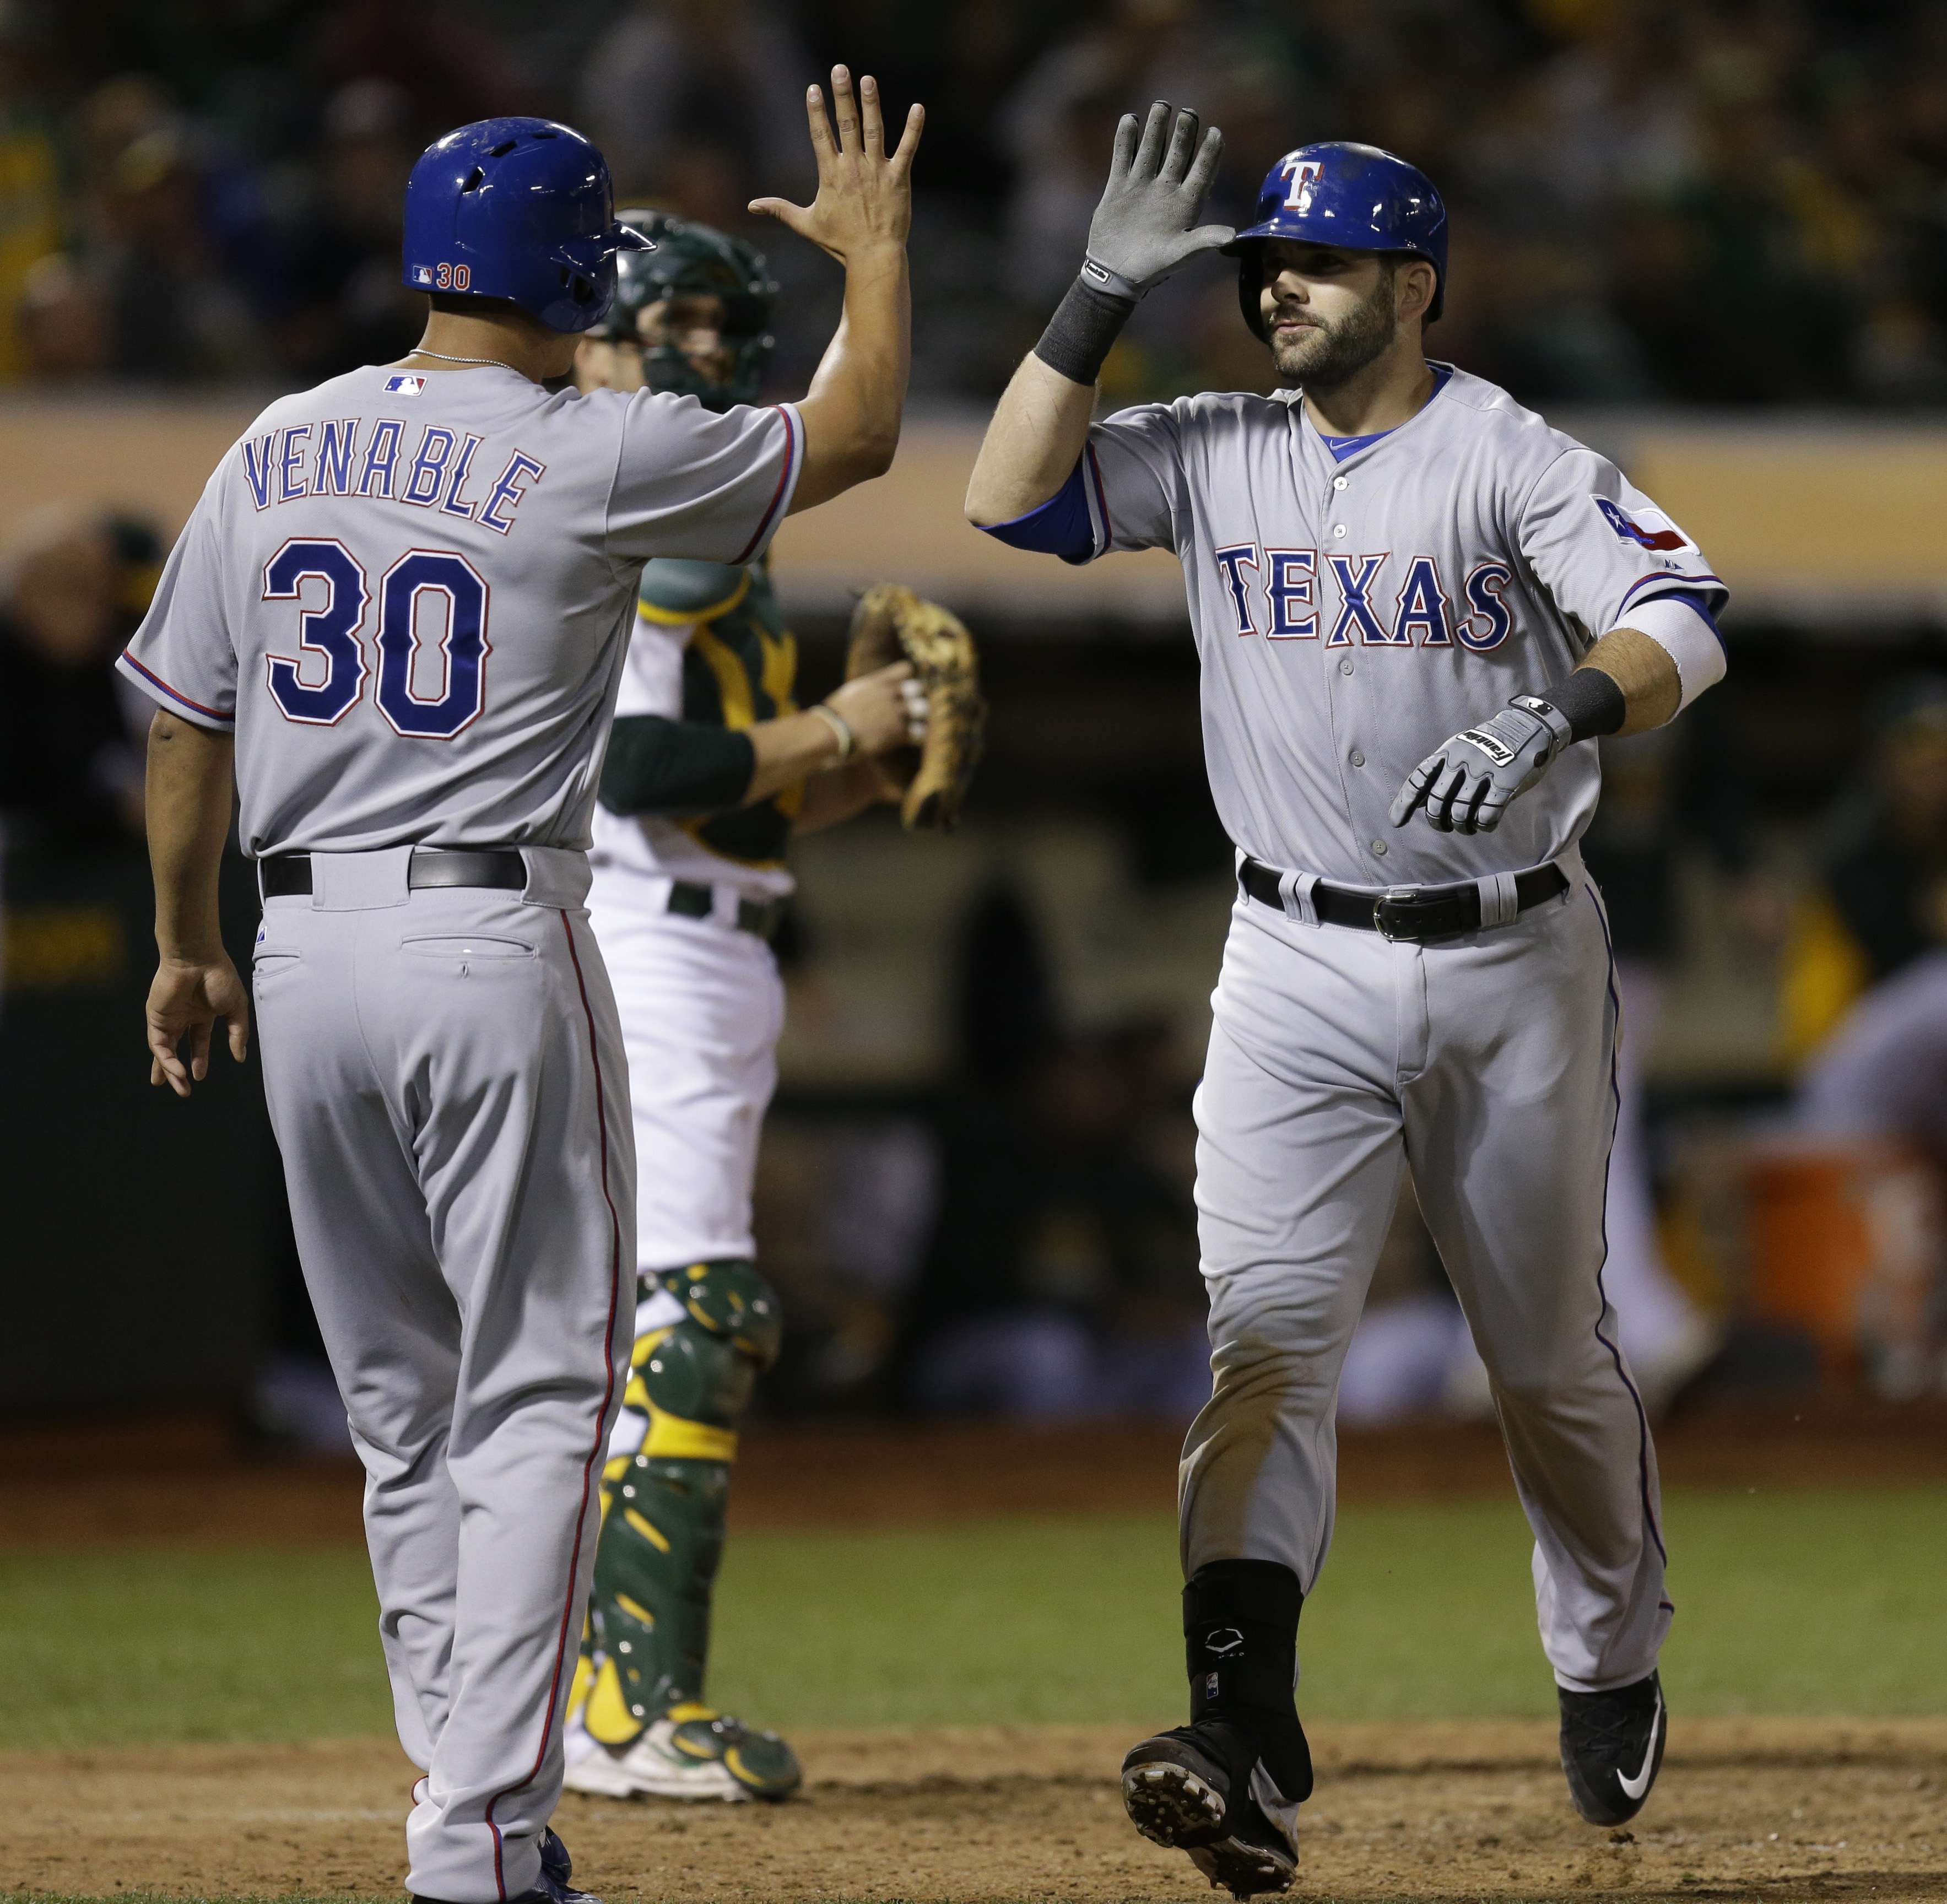 Texas Rangers' Mitch Moreland, right, is congratulated by Will Venable (30) after hitting a two-run home run off Oakland Athletics' Sean Nolin during the sixth inning of a baseball game Tuesday, Sept. 22, 2015, in Oakland, Calif. (AP Photo/Ben Margot)